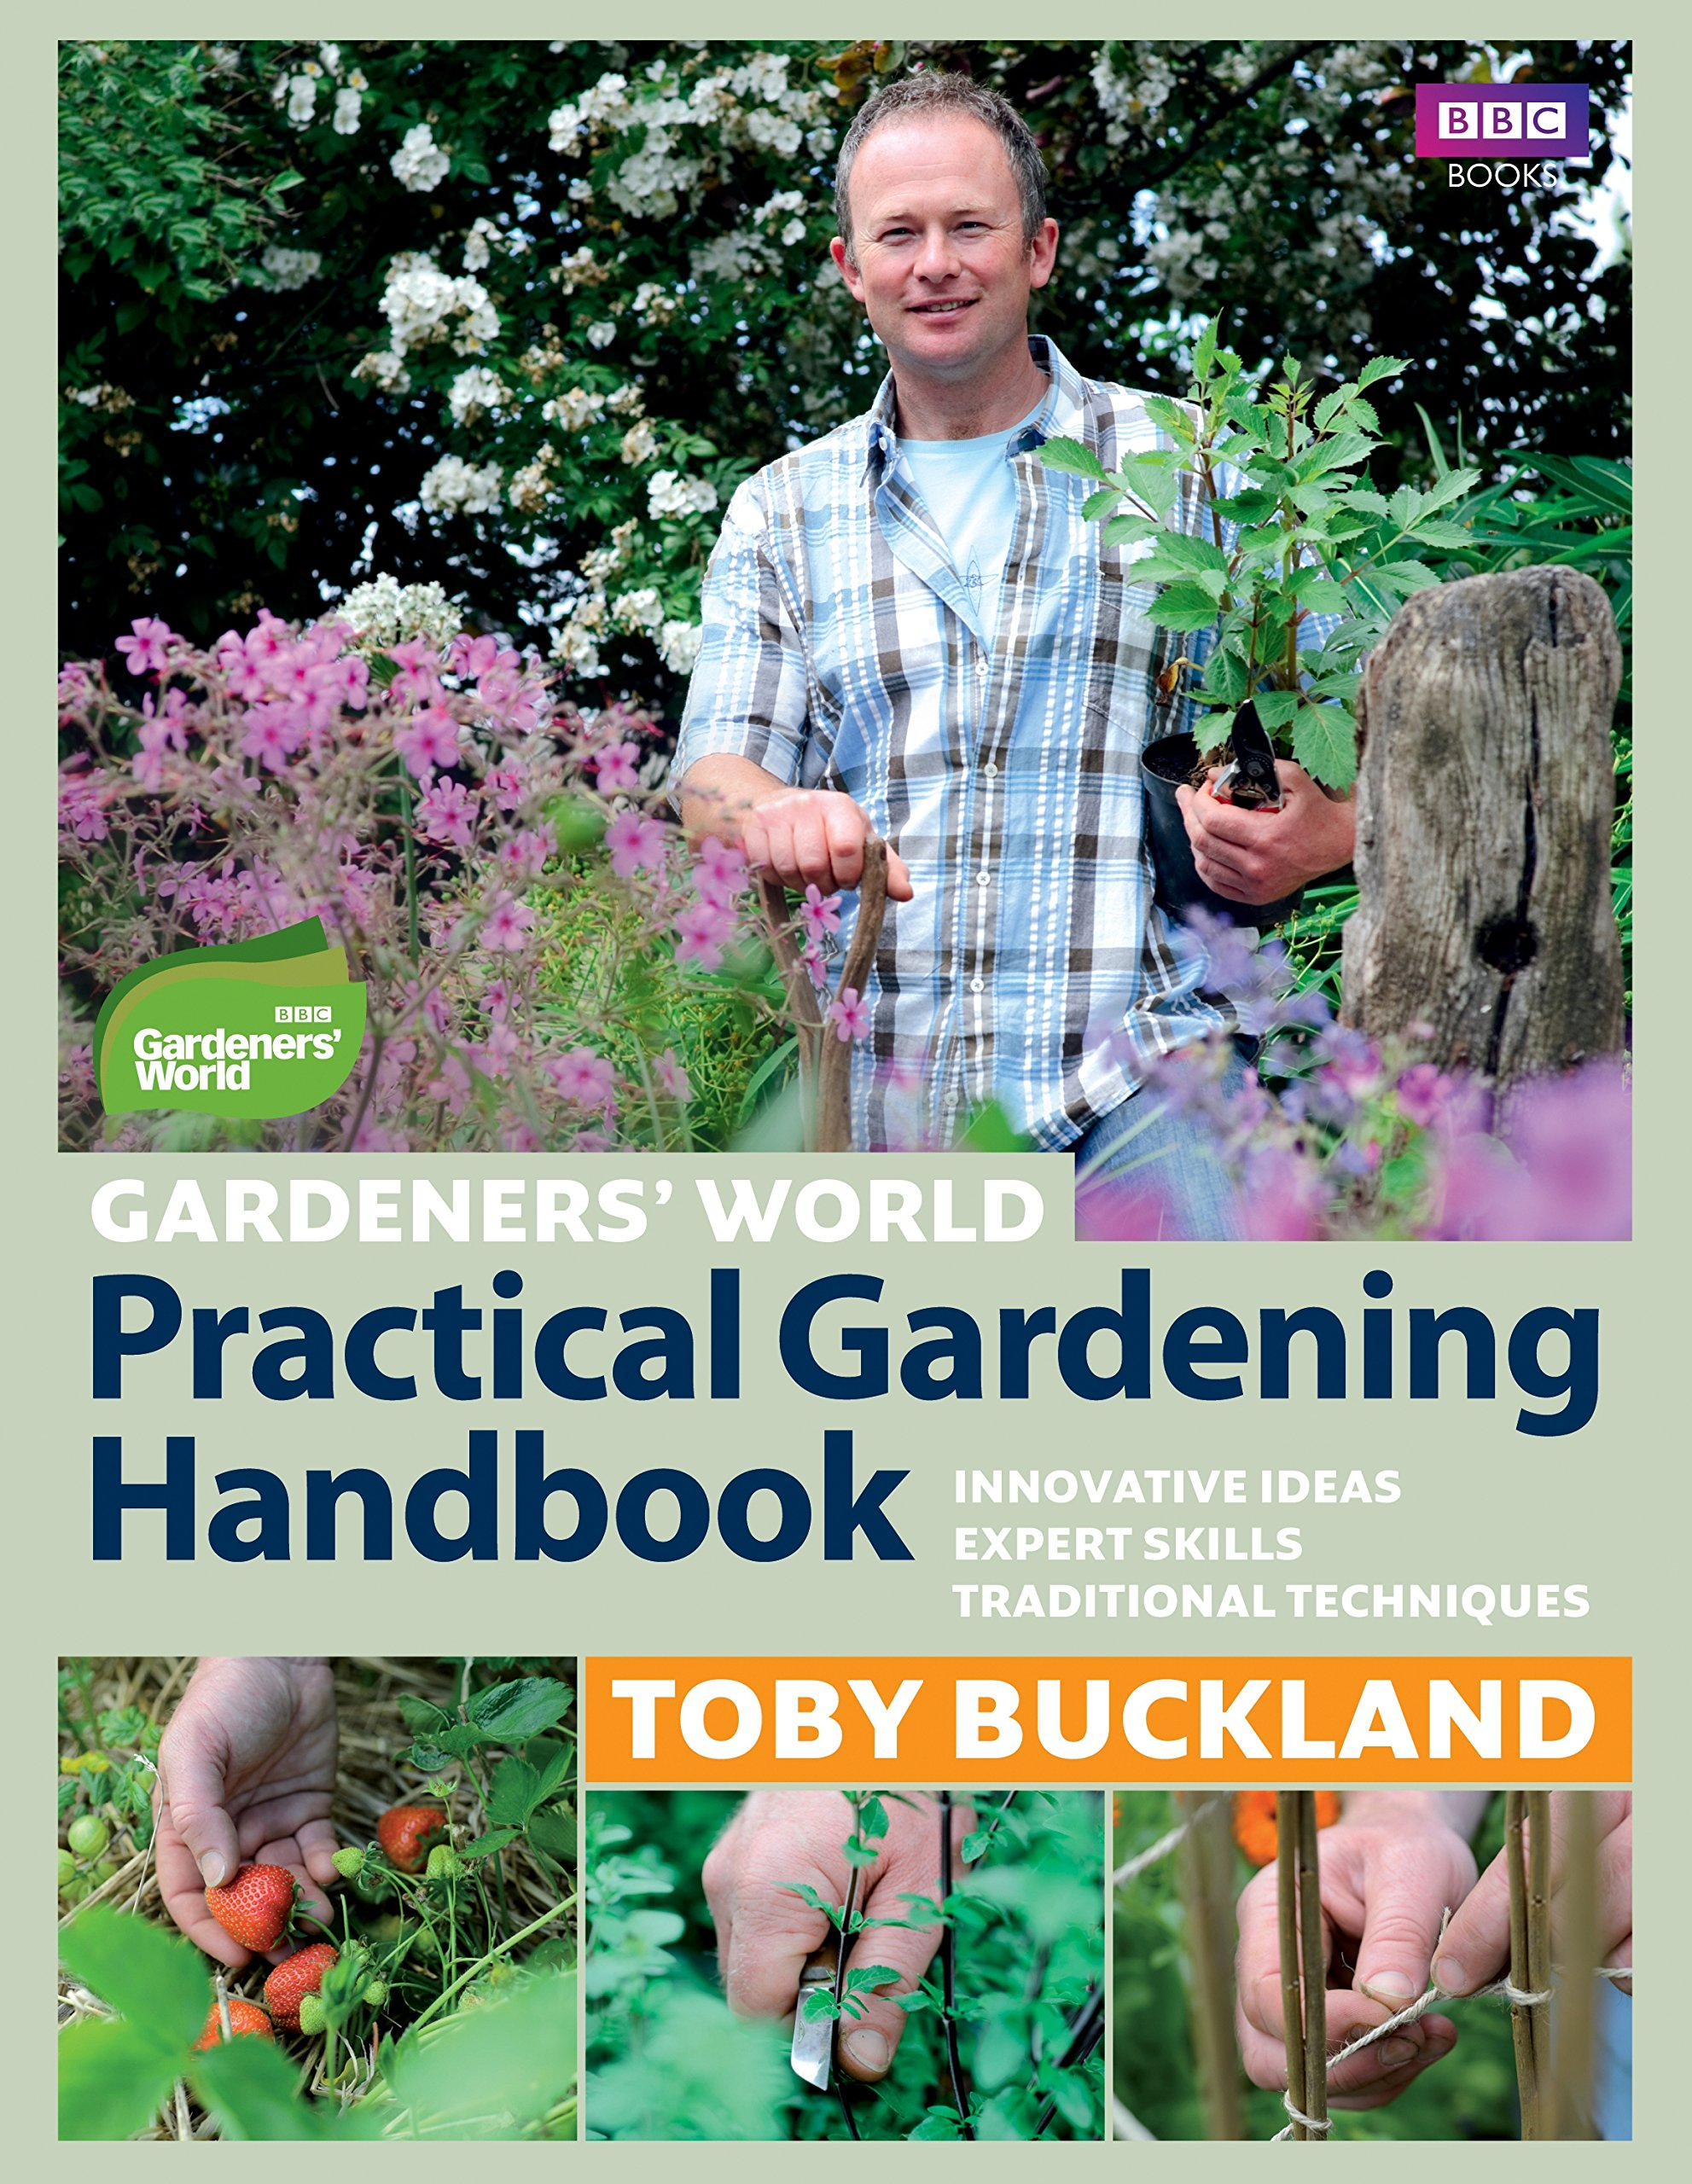 Gardeners' World Practical Gardening Handbook: Traditional Techniques, Expert Skills, Innovative Ideas